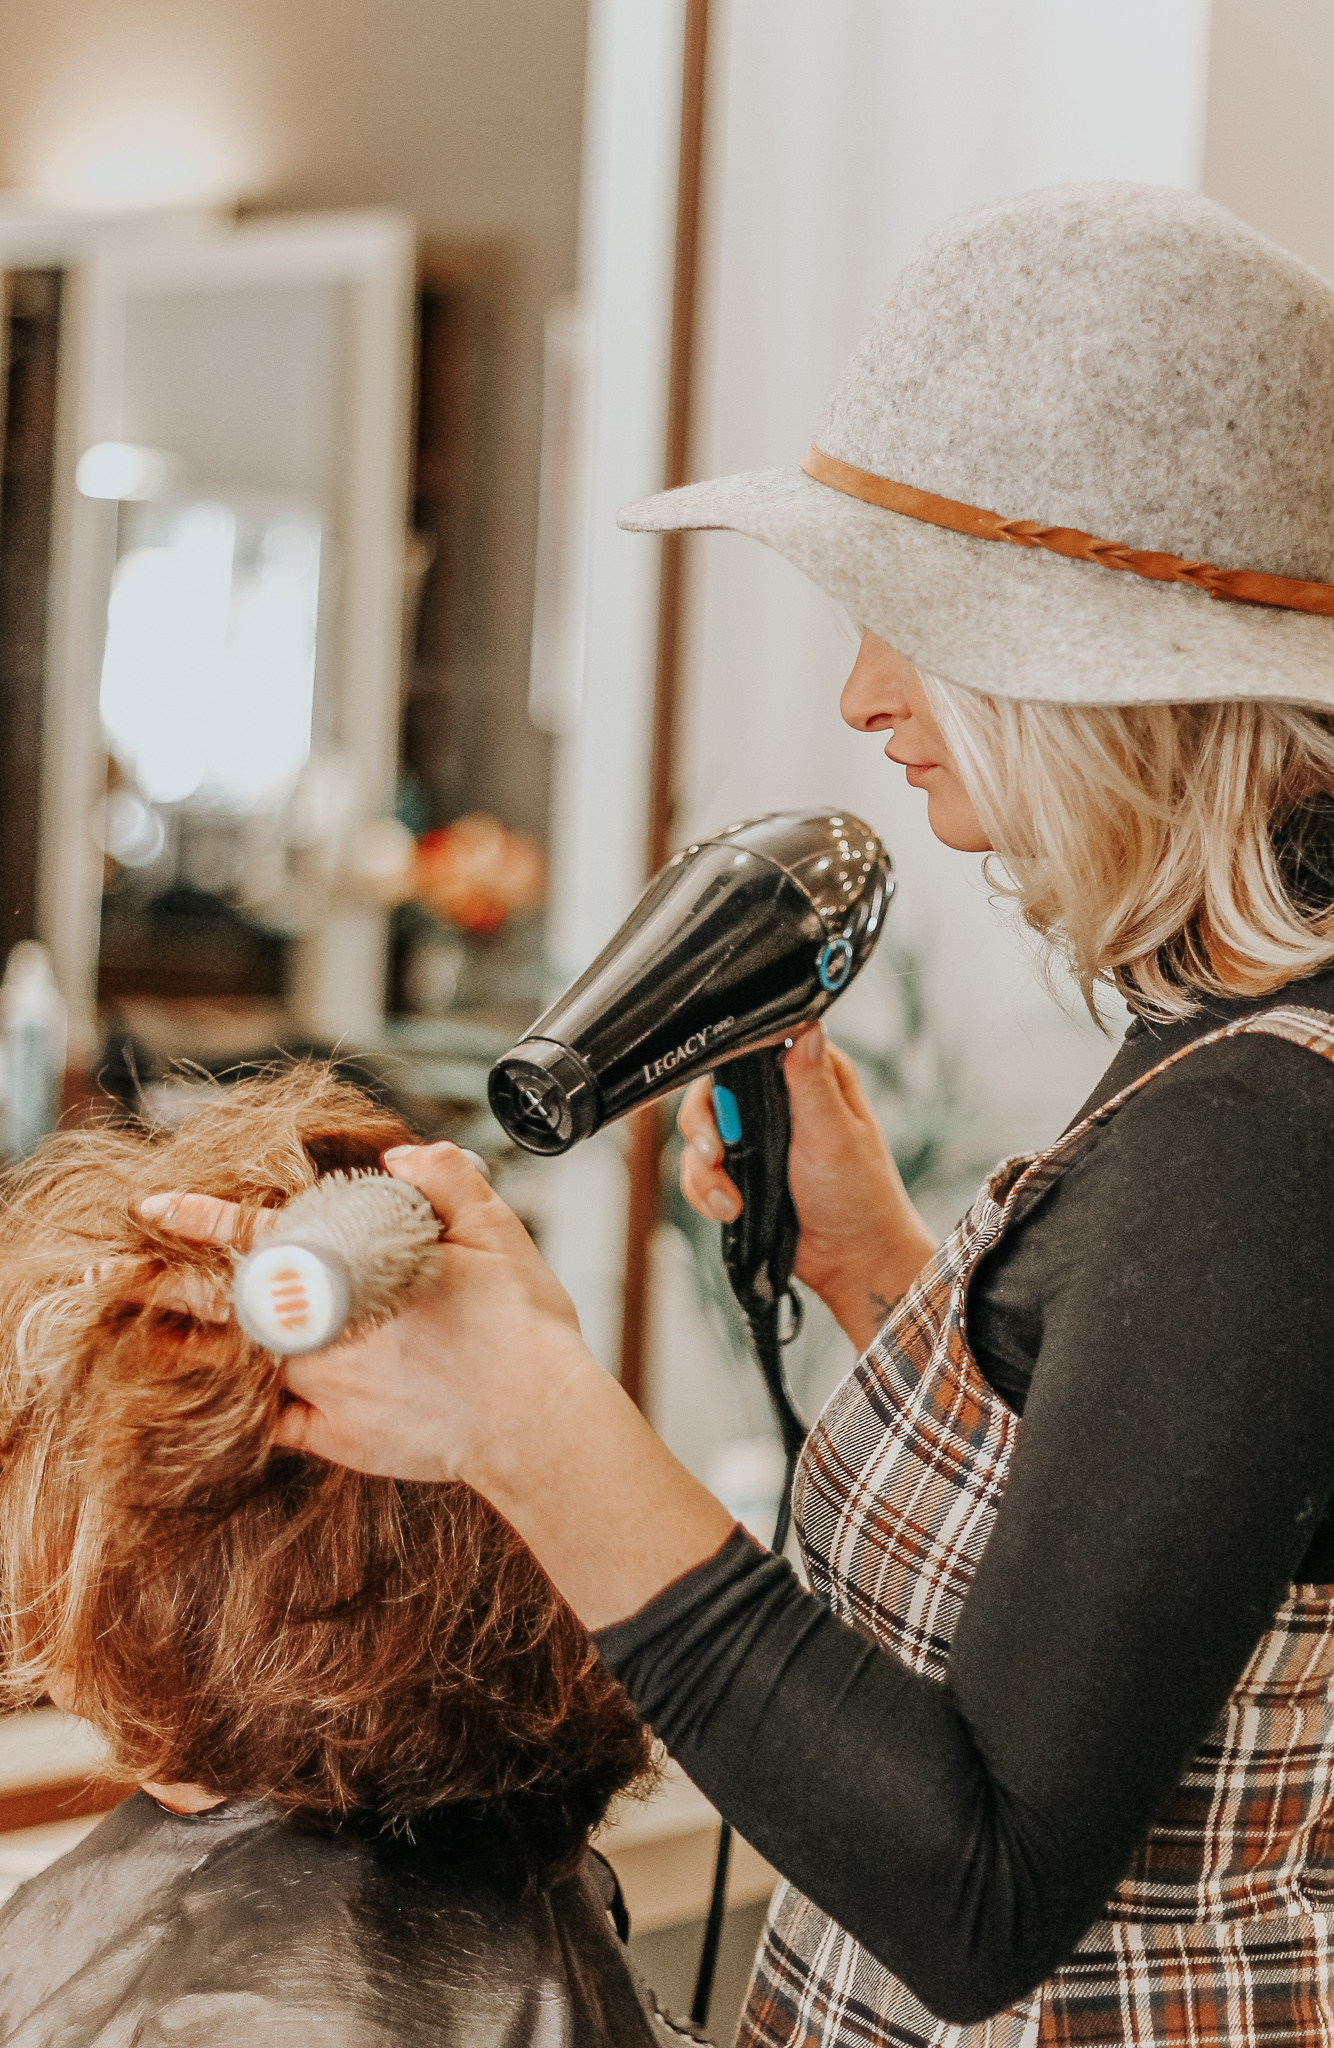 Stylist blow drying hair at this Omaha Hair Salon